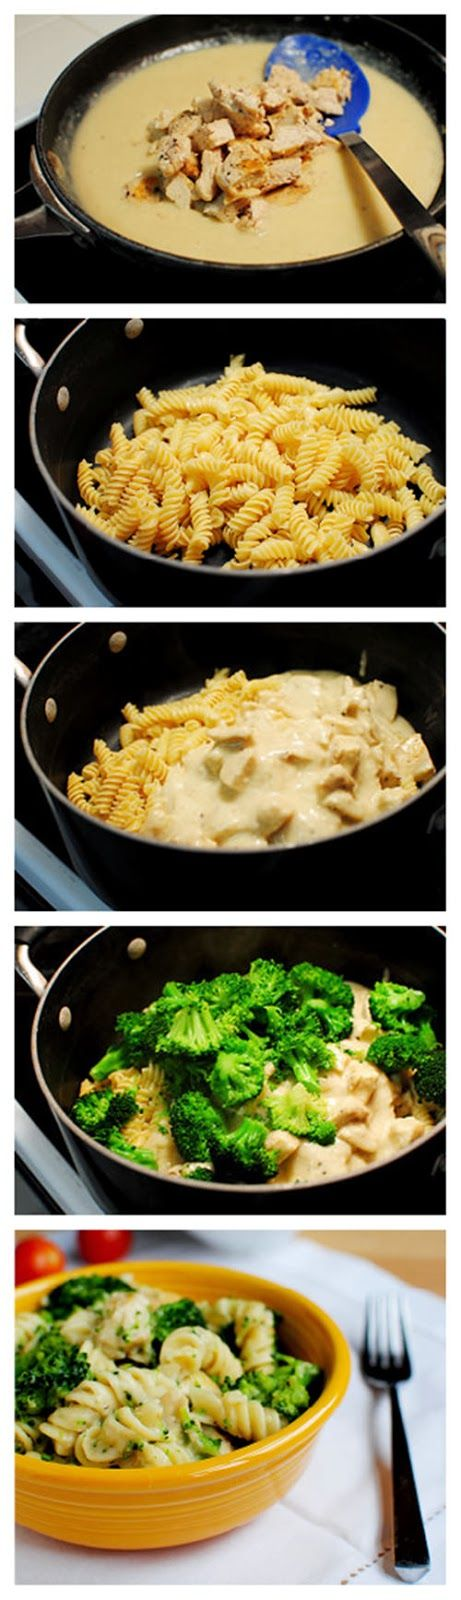 One World Recipe: Skinny Chicken & Broccoli Alfredo